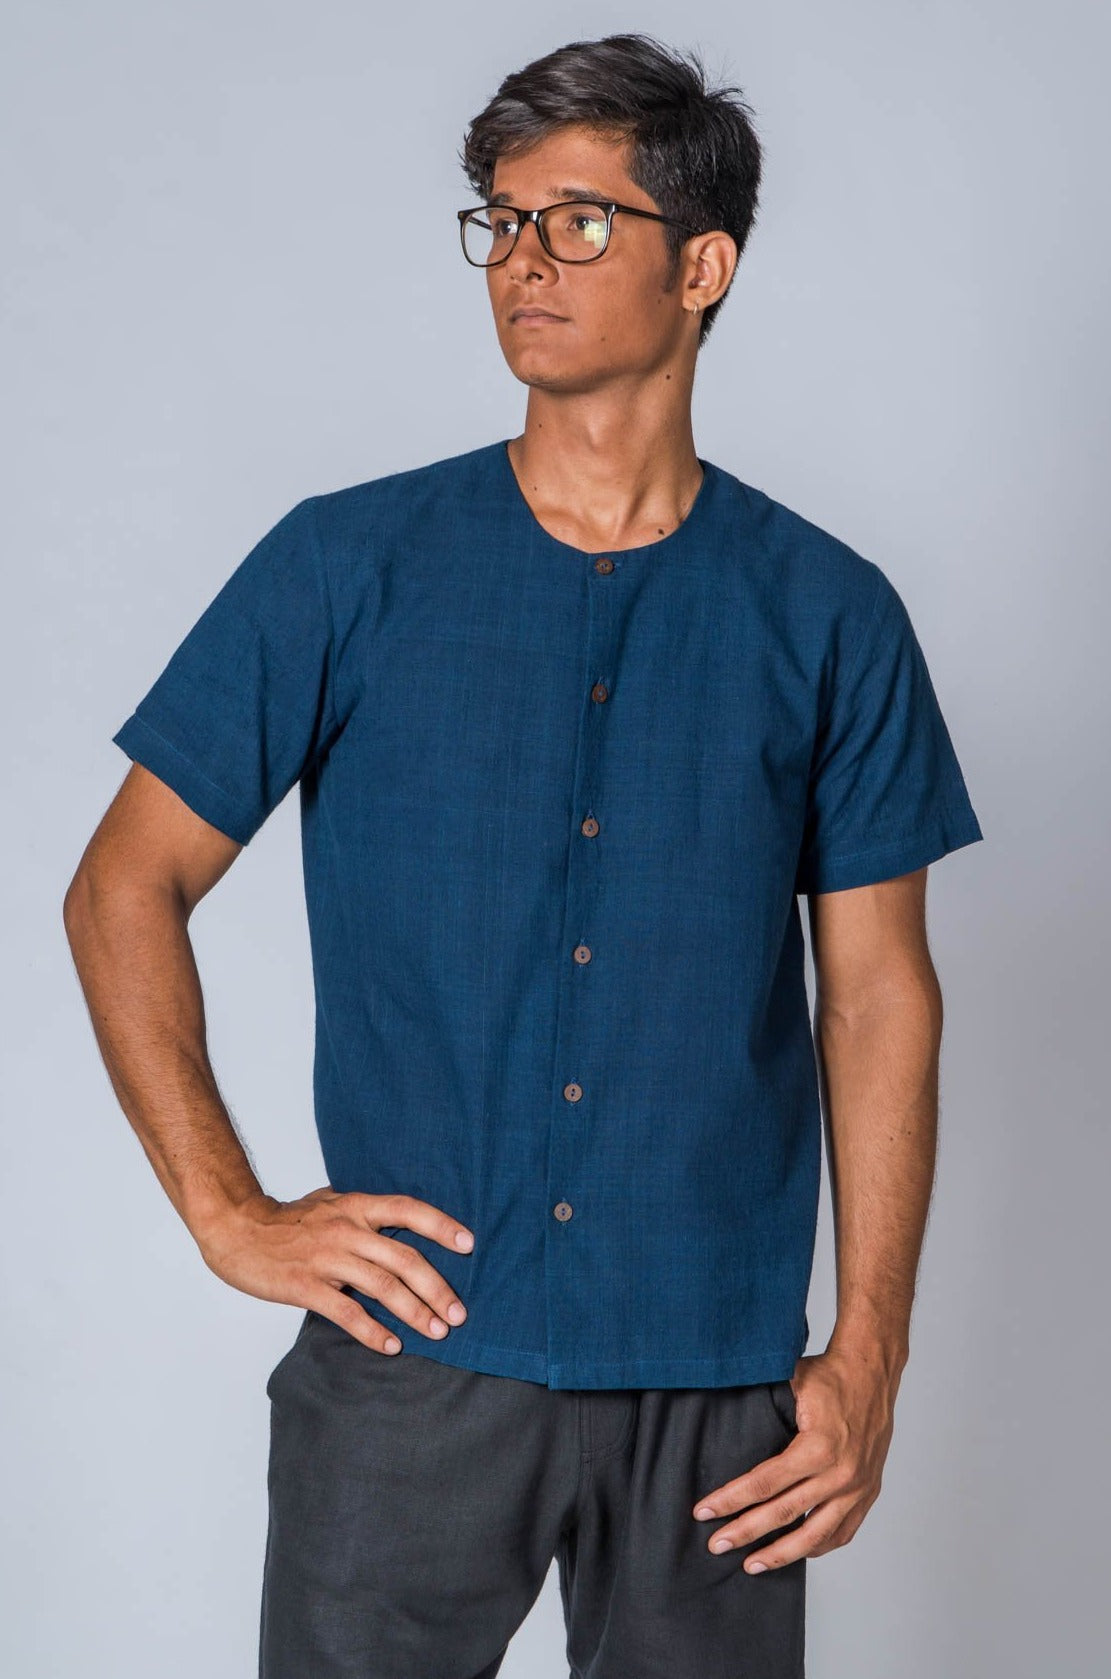 Natural Indigo Handwoven Shirt - JAMA - Upasana Design Studio